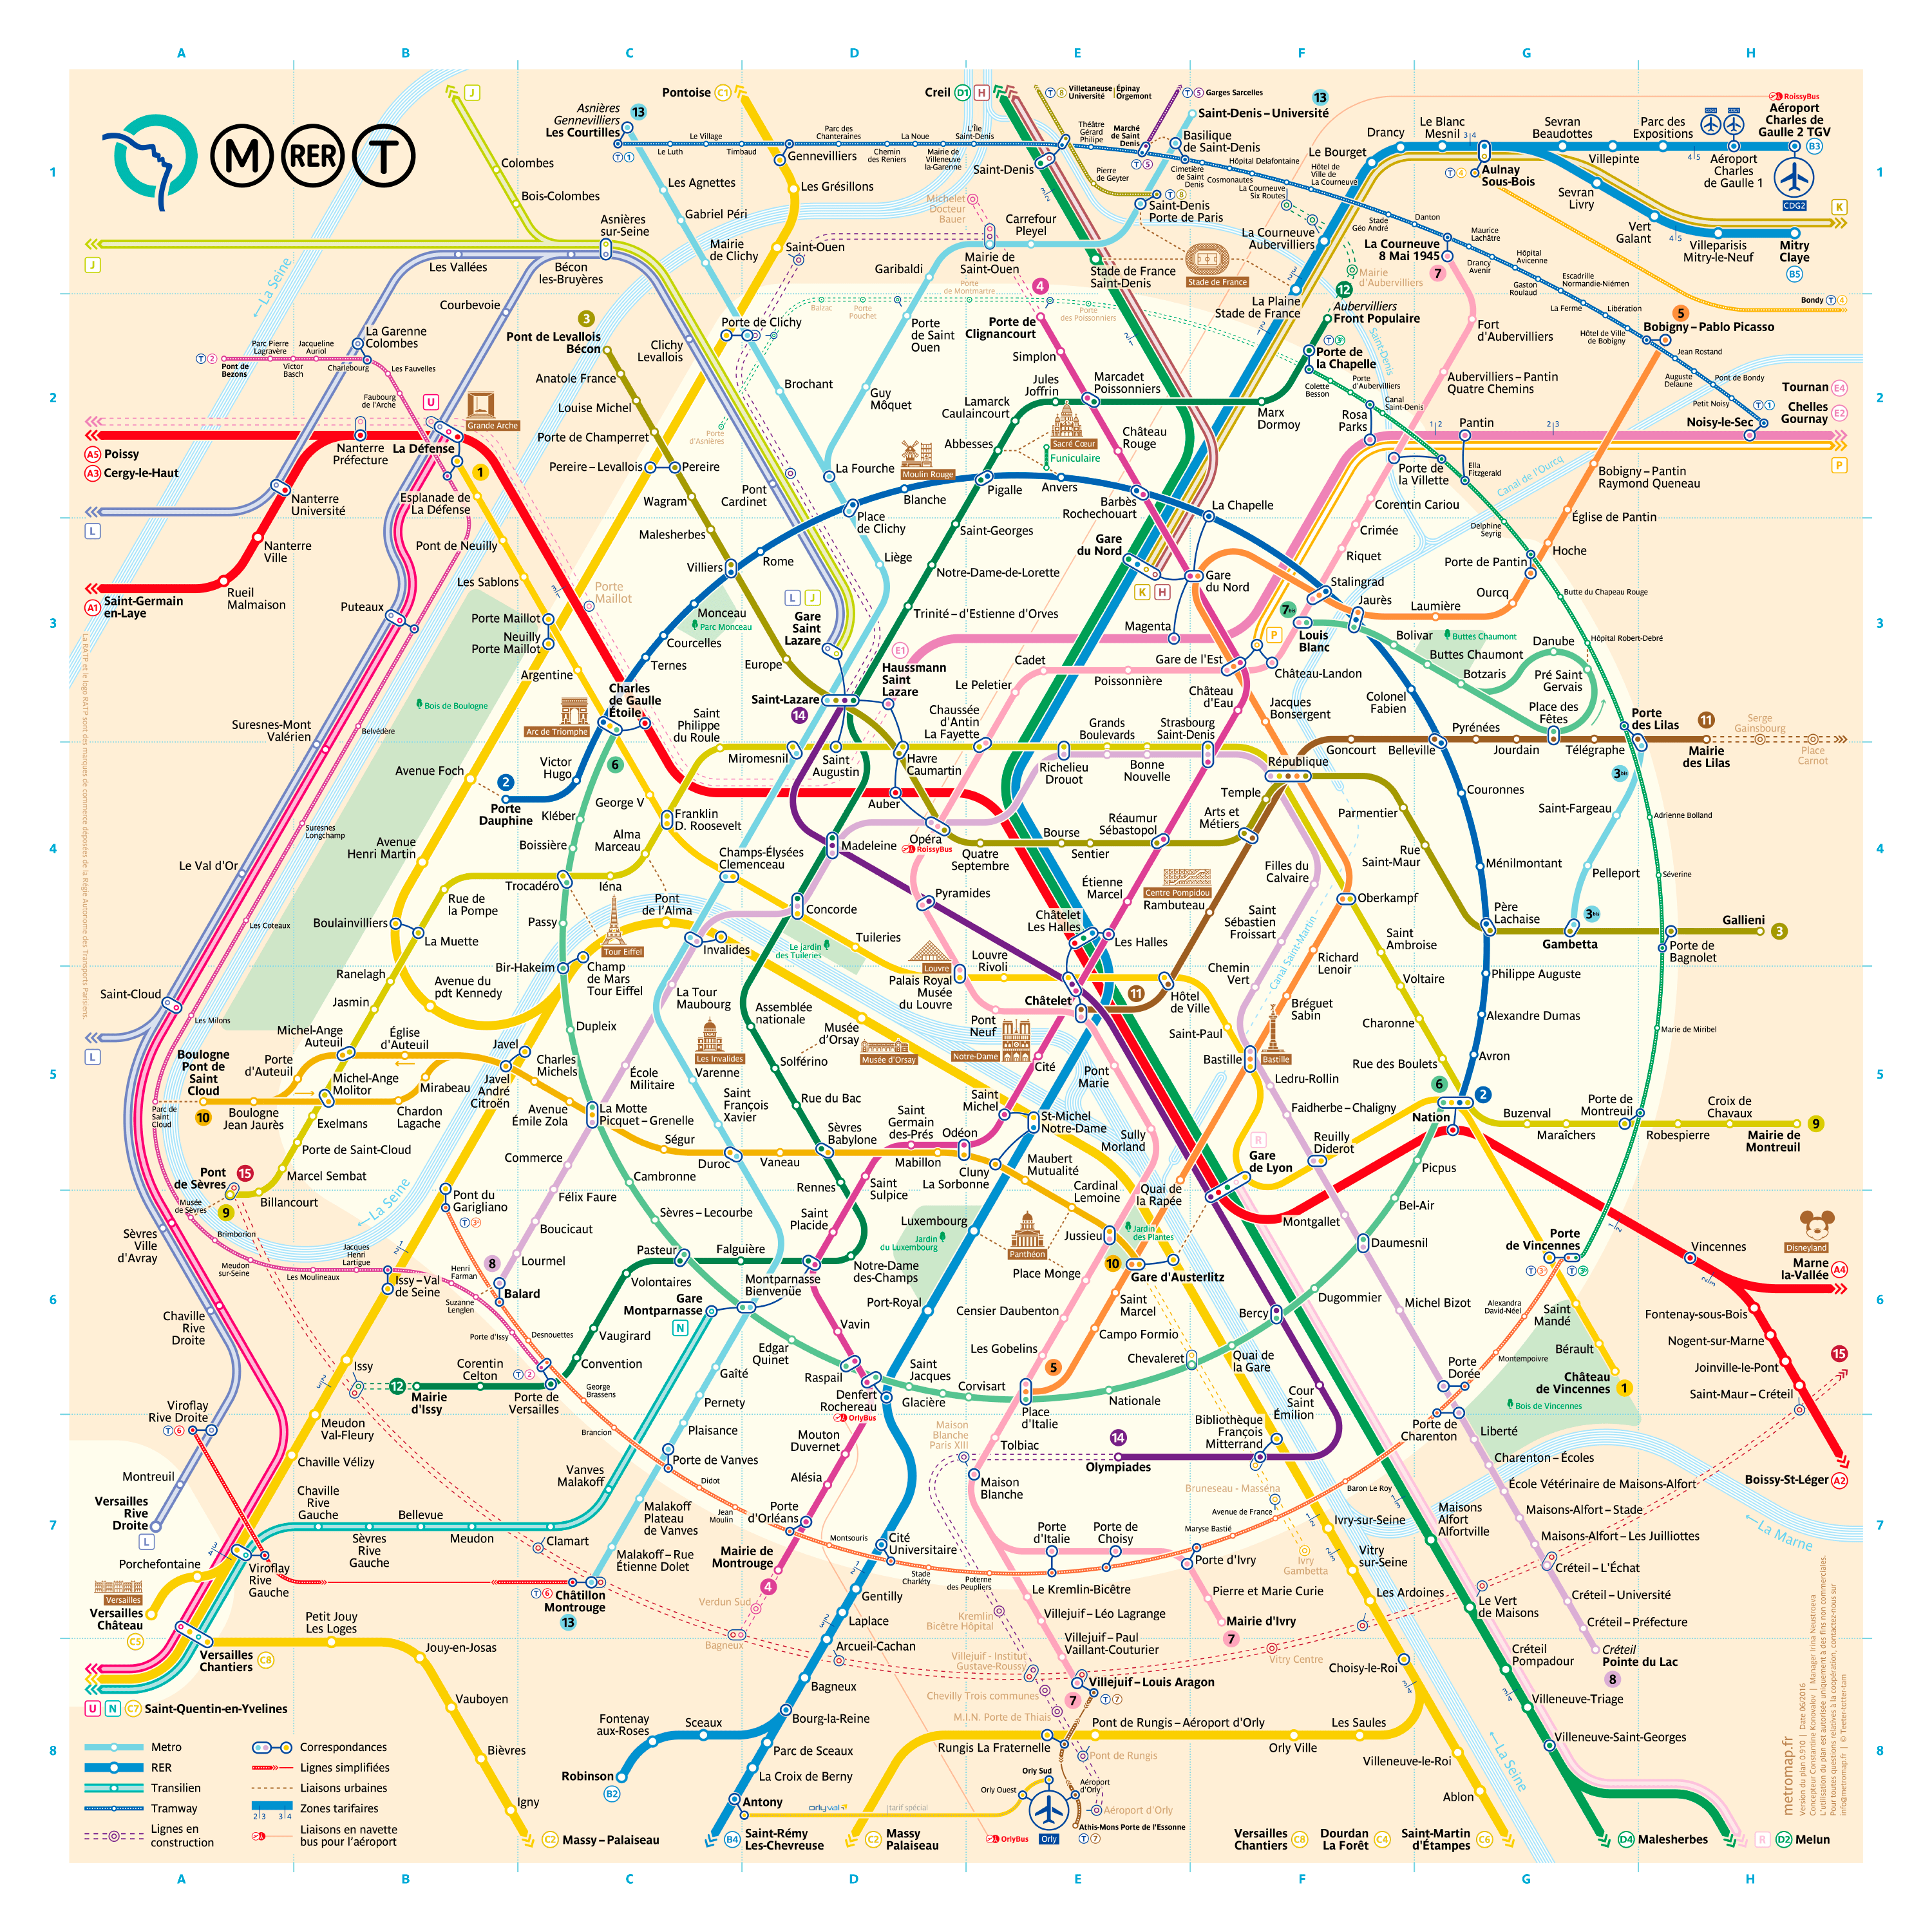 France Subway Map.The New Paris Metro Map Design Inspiration Pinterest Paris